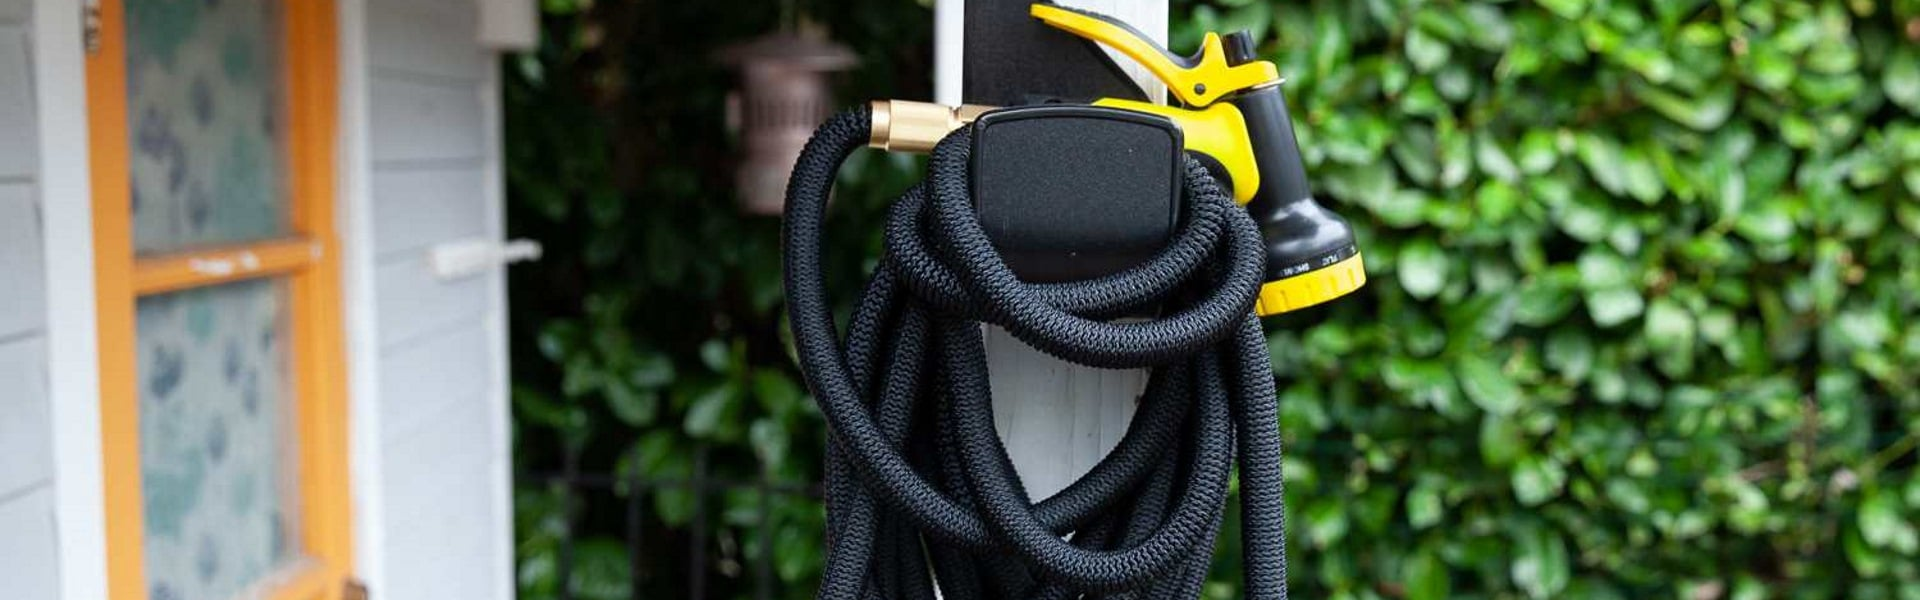 Best Expandable Hoses Reviewed in Detail